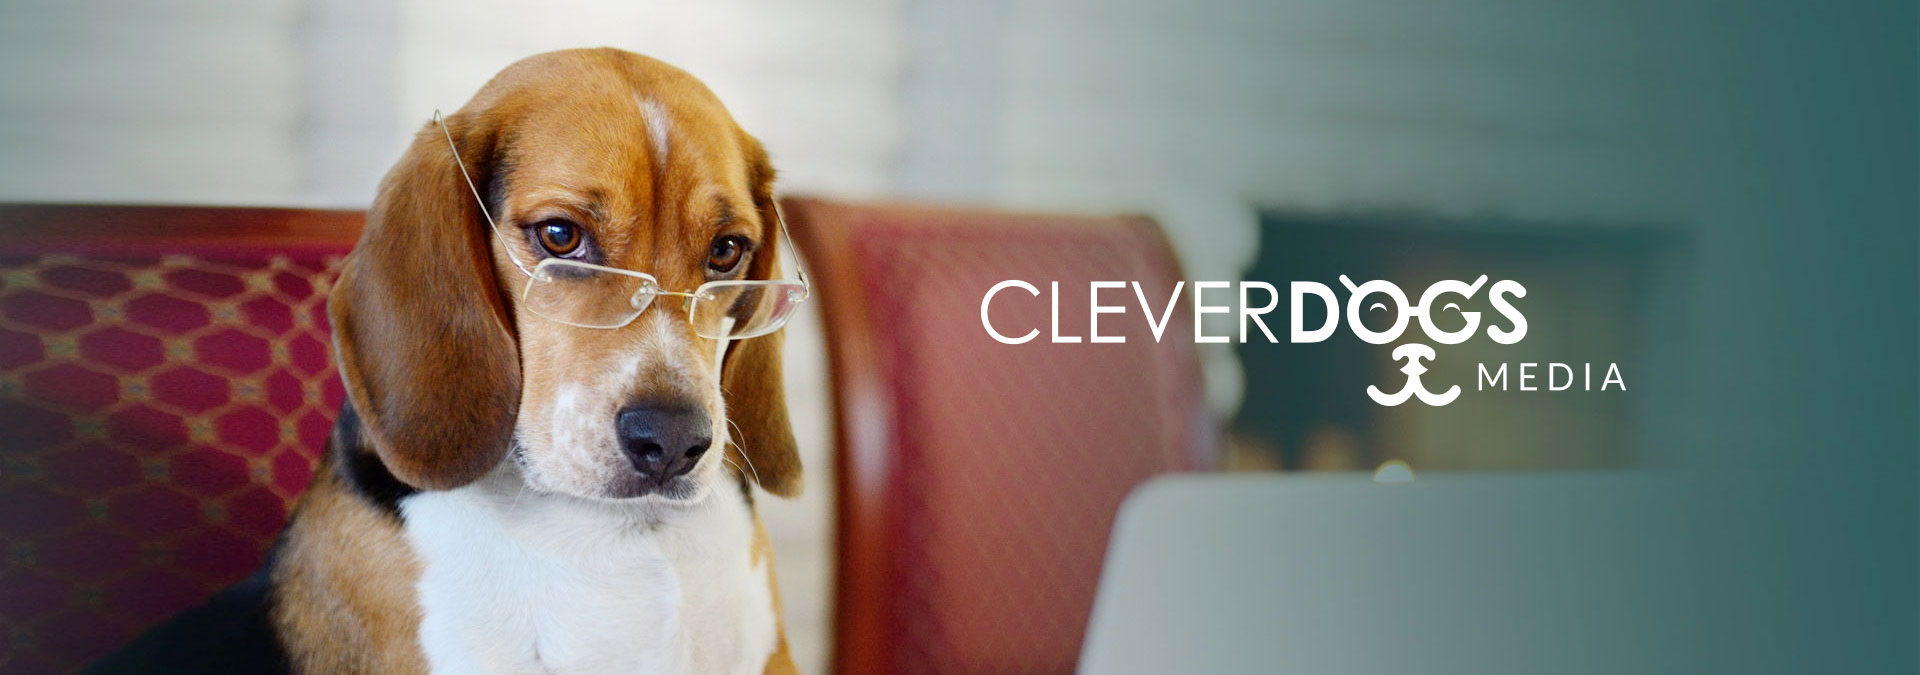 Clever Dogs Media Banner